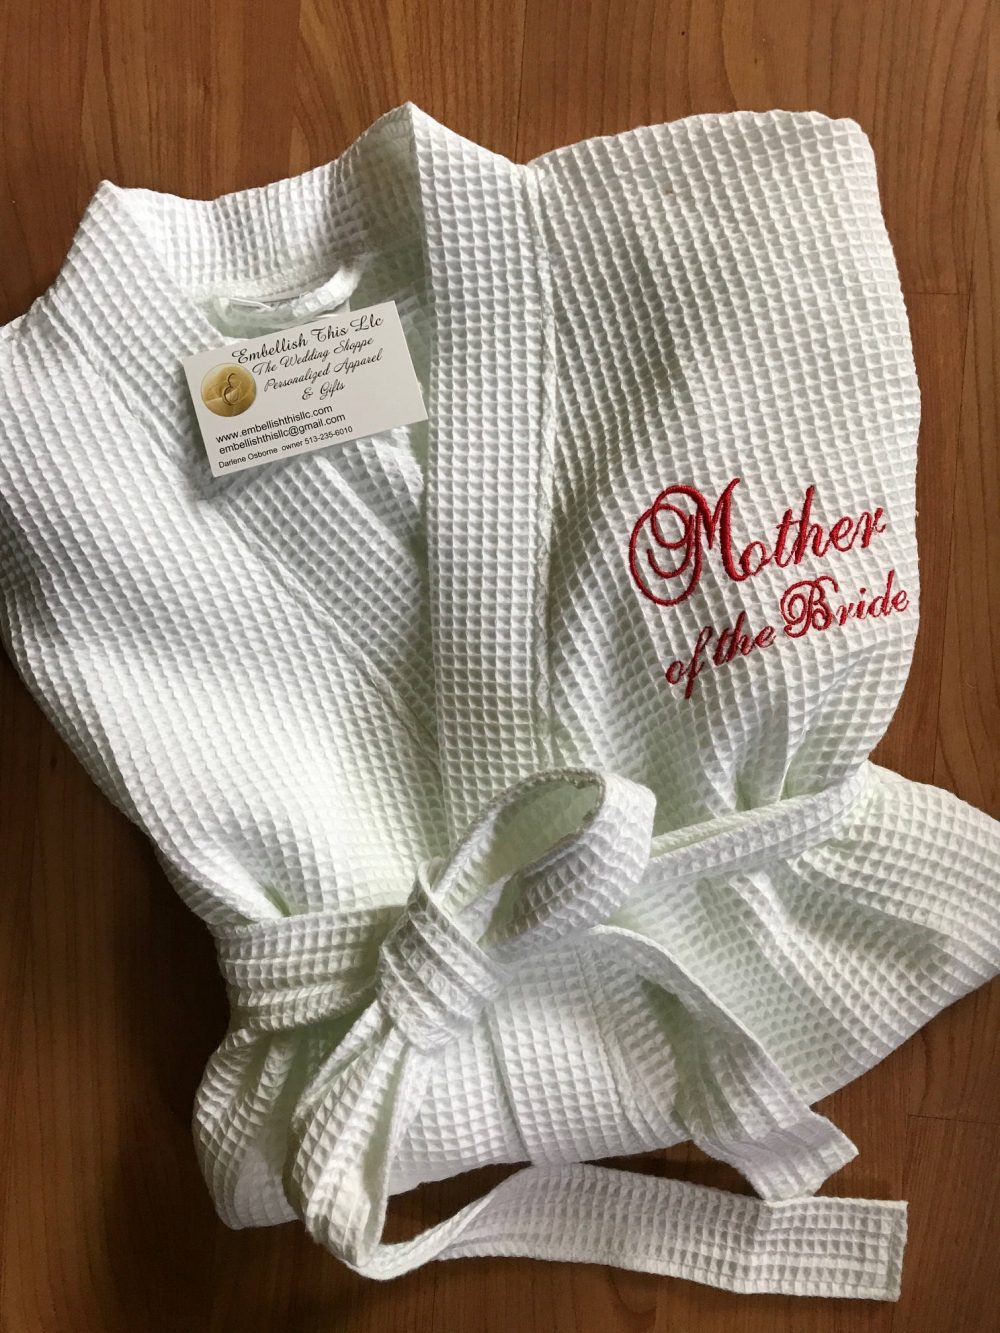 Mother Of Bride Robe, Personalized Spa Robe, Mob & Mog Gifts, Bridal Party Robes, Wedding Mom's Mothers Day Gifts